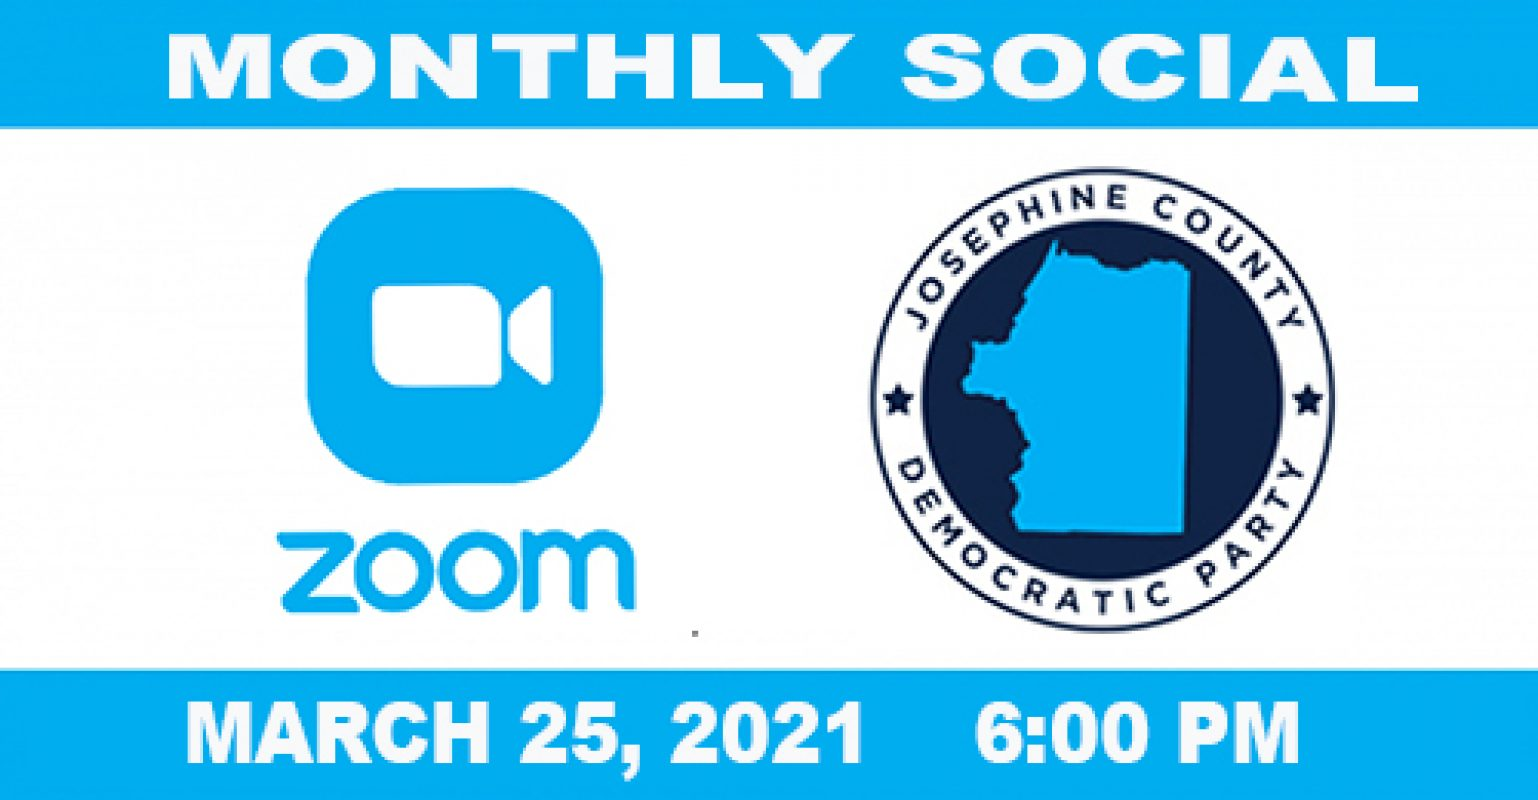 REMINDER! Join us tonight 3/25 for our Monthly Virtual Social!